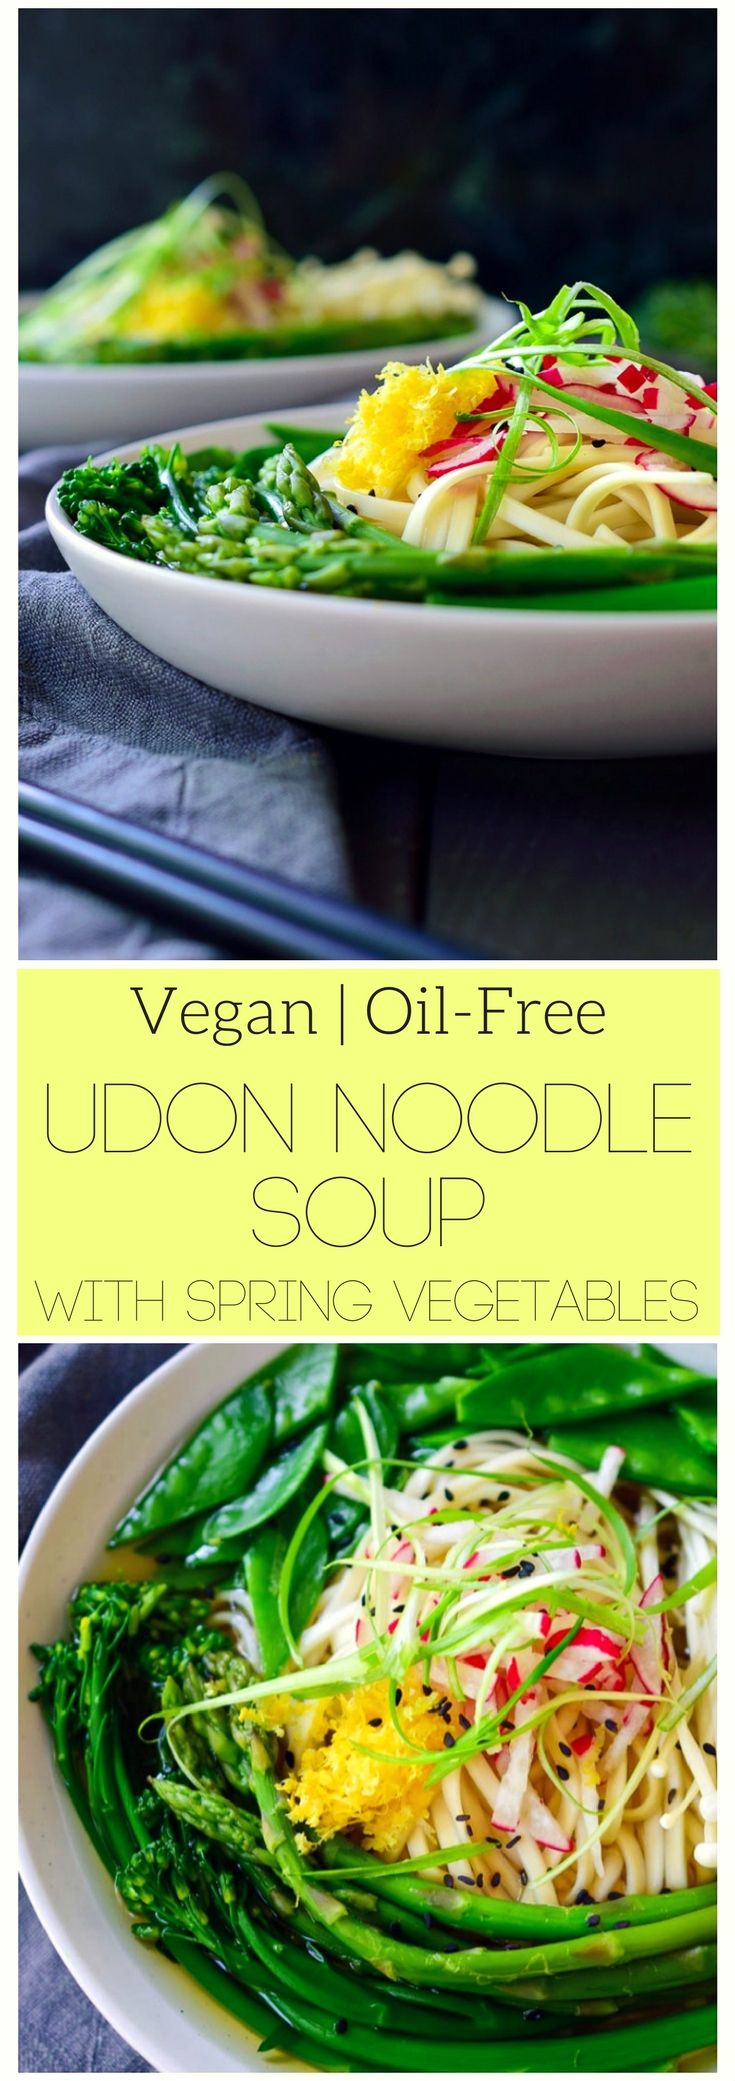 This vegan udon noodle soup is light and delicious with a simple Japanese-style broth and crisp spring vegetables. The broth is the perfect balance of sweet and savoury with a hint of lemon to compliment the freshness of the broccolini, asparagus and snow peas. The flat udon noodles are deliciously chewy and perfect for slurping up all that delicious broth!